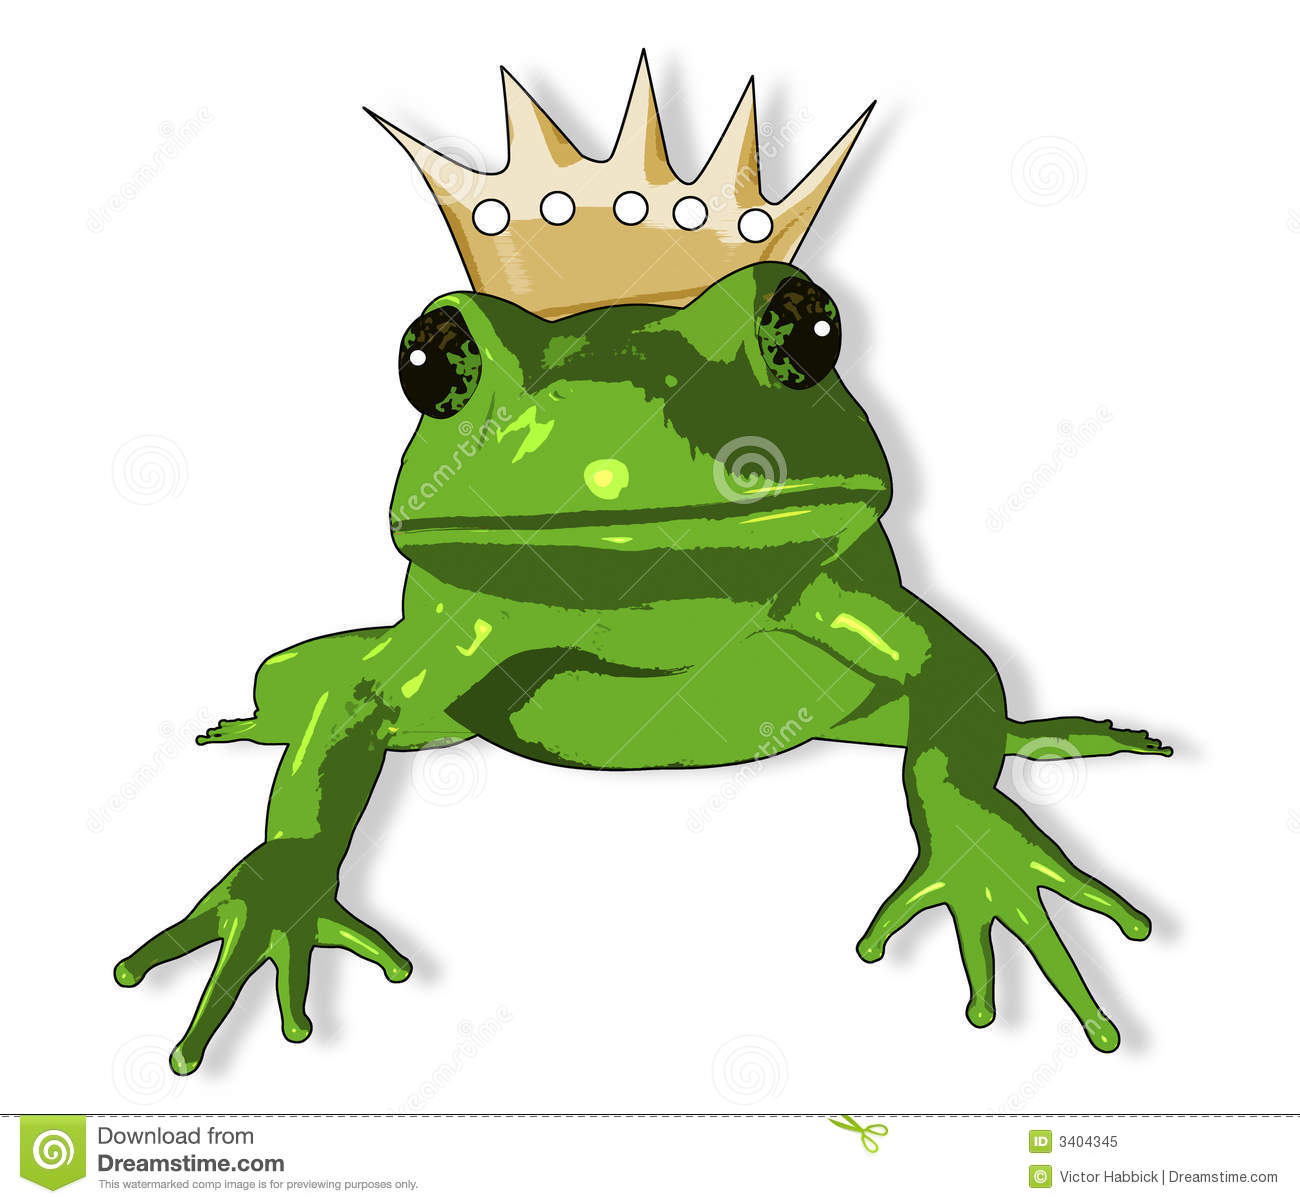 Like Image Of A Frog As Depicted As The Frog Prince In The Fairy Tail